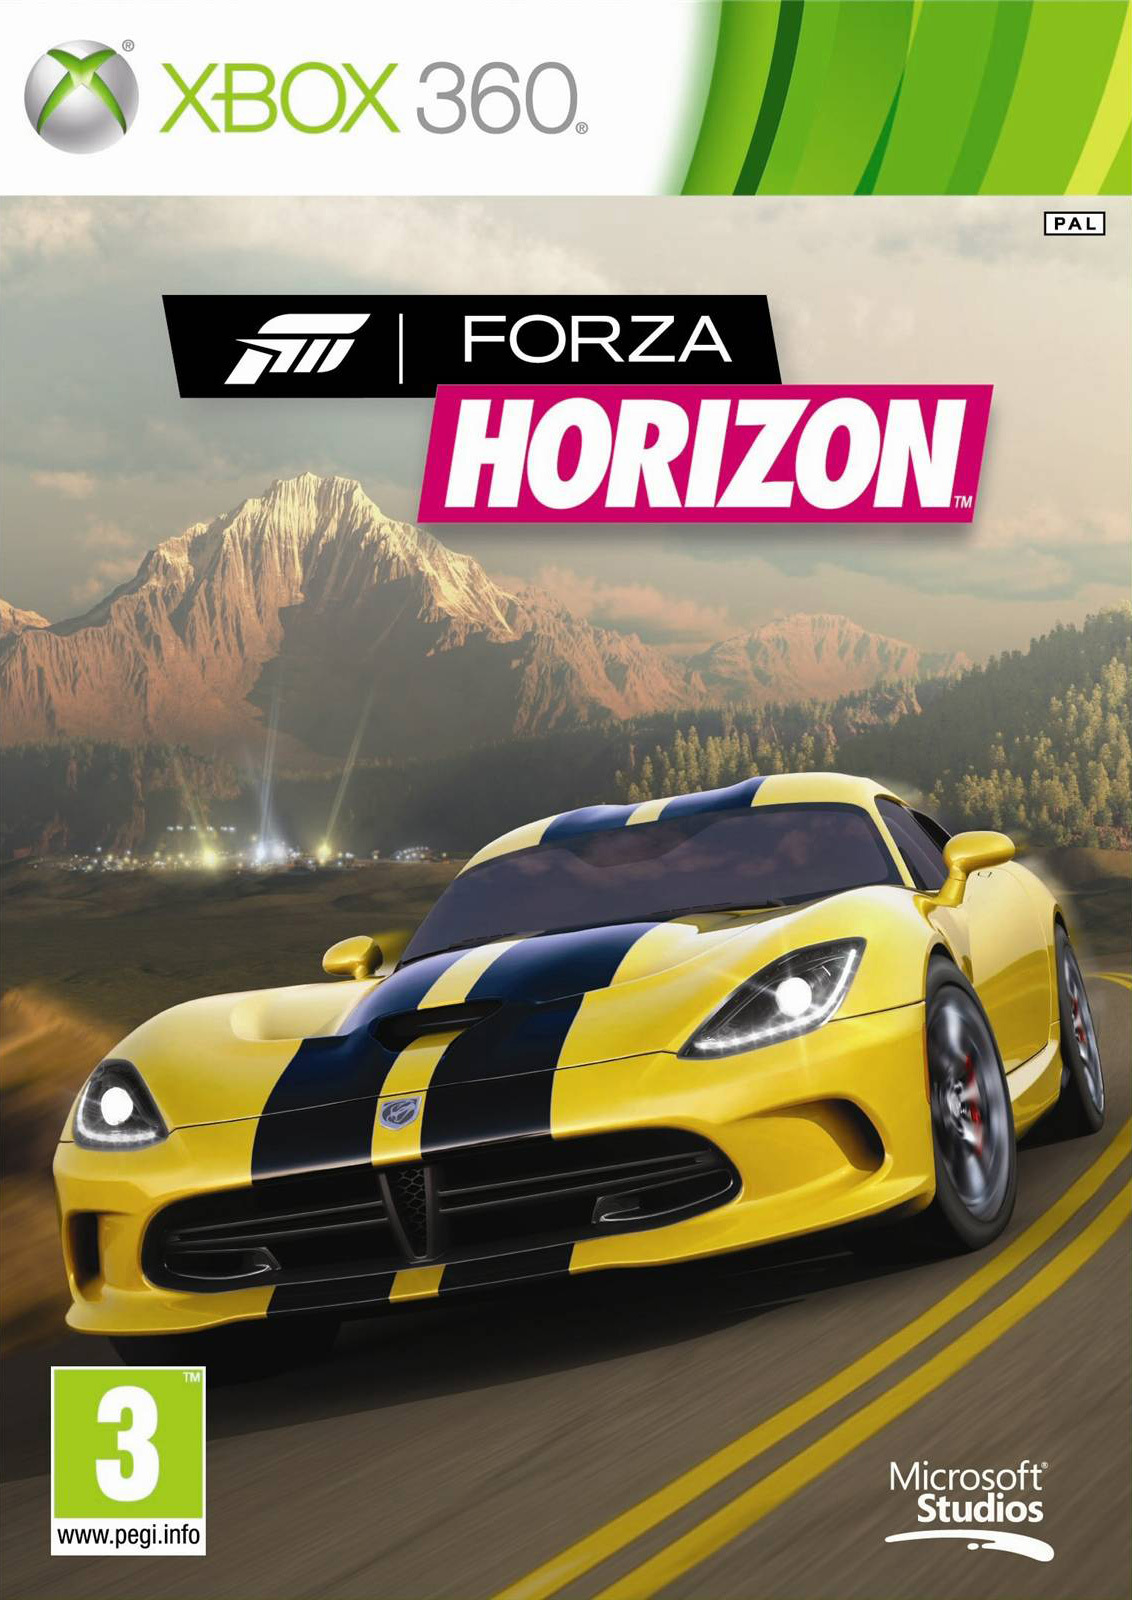 forza horizon sur xbox 360. Black Bedroom Furniture Sets. Home Design Ideas